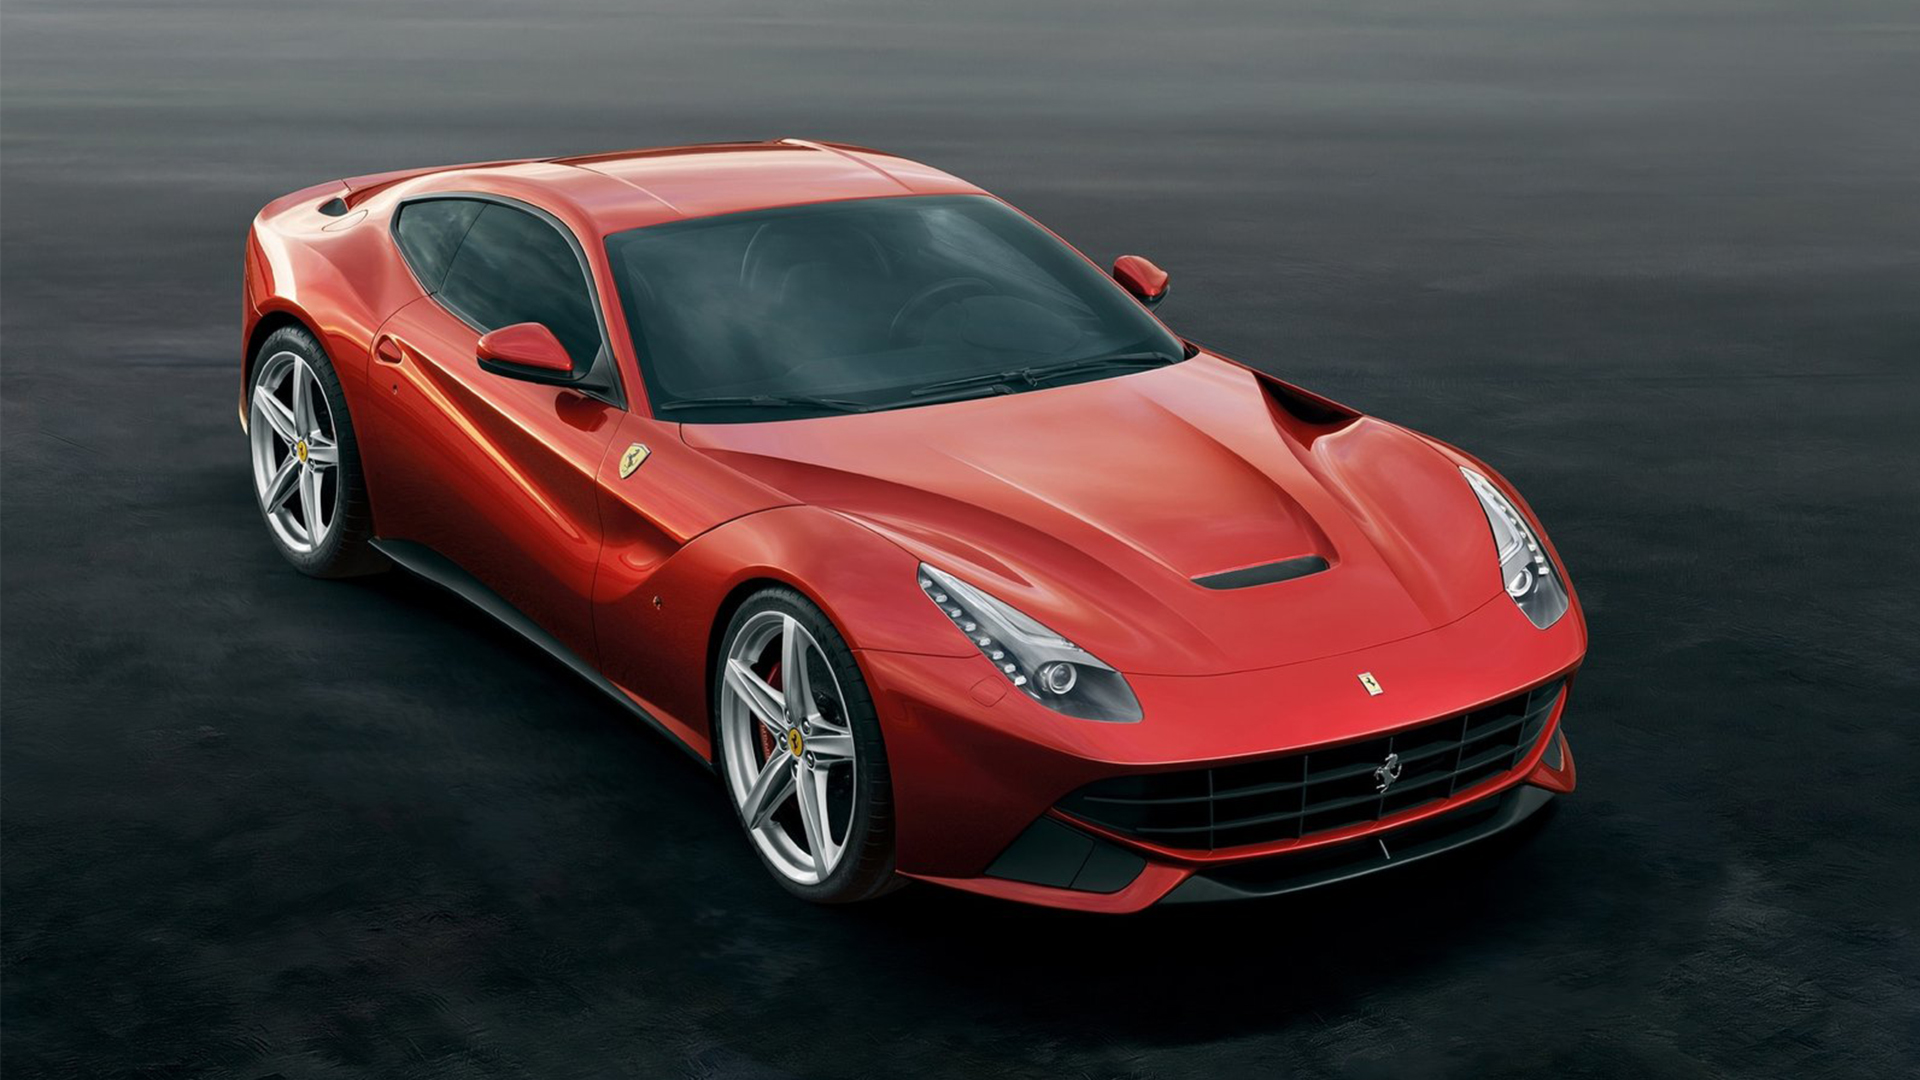 ferrari f12 berlinetta photos informations articles. Black Bedroom Furniture Sets. Home Design Ideas